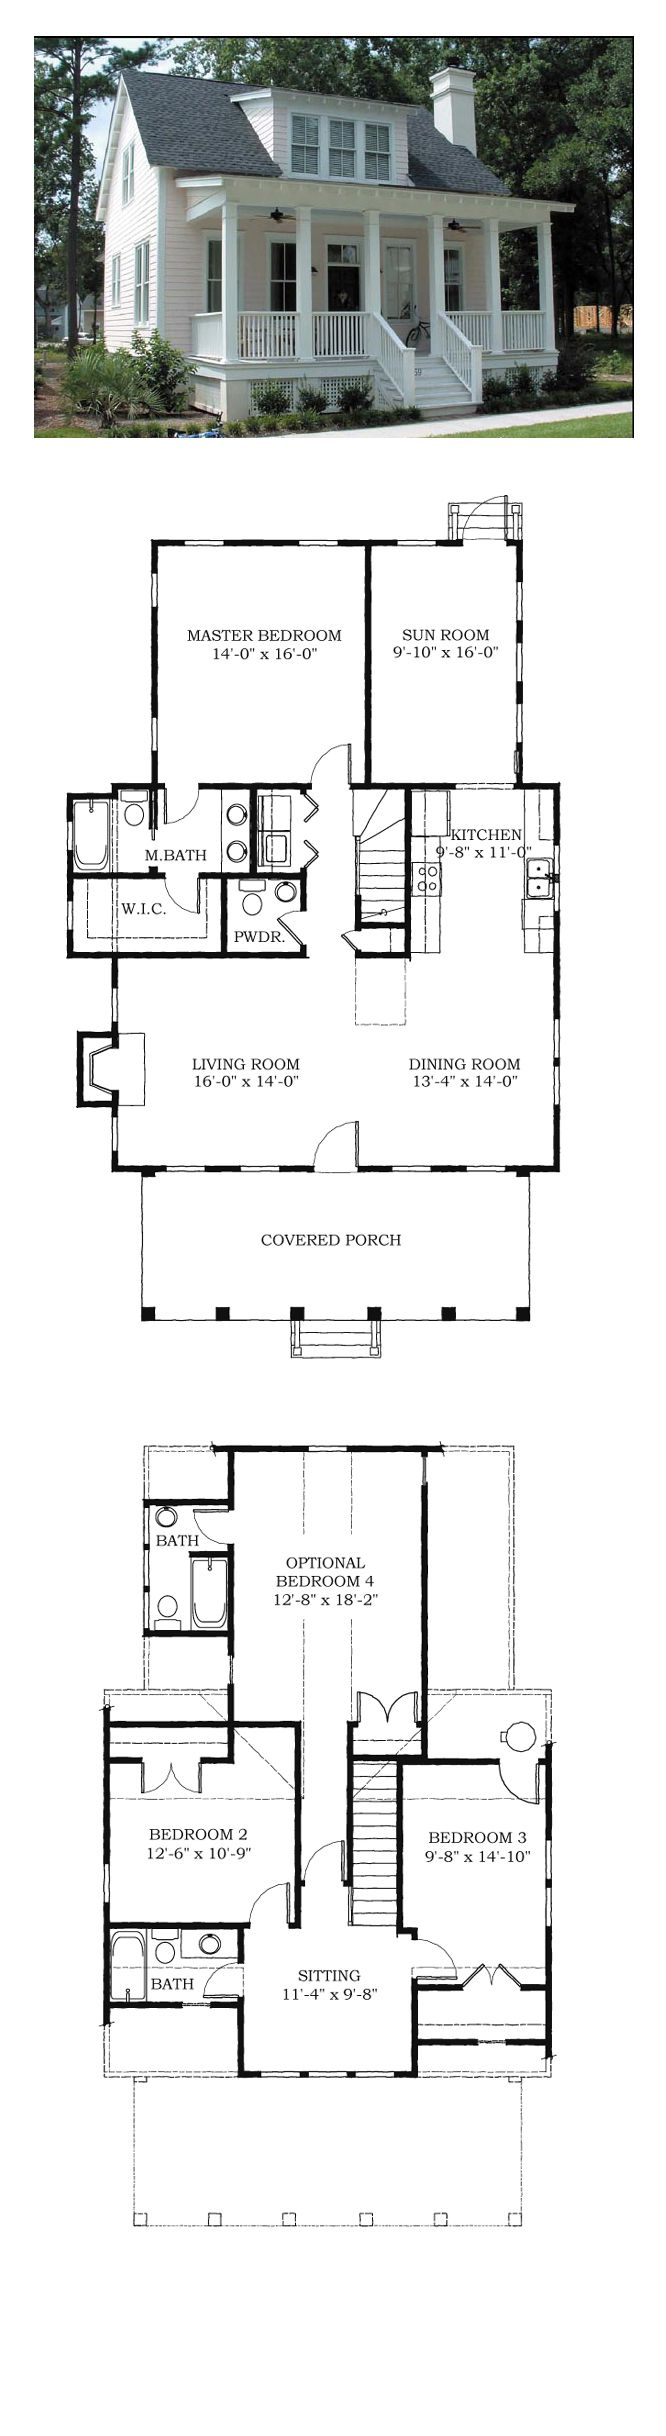 Colonial House Plan 85454   Total Living Area  3338 sq  ft   4 bedrooms and  bathrooms  The floor plan is completely up to date beginning with an open  entry. 17 Best ideas about Small House Plans on Pinterest   Small house